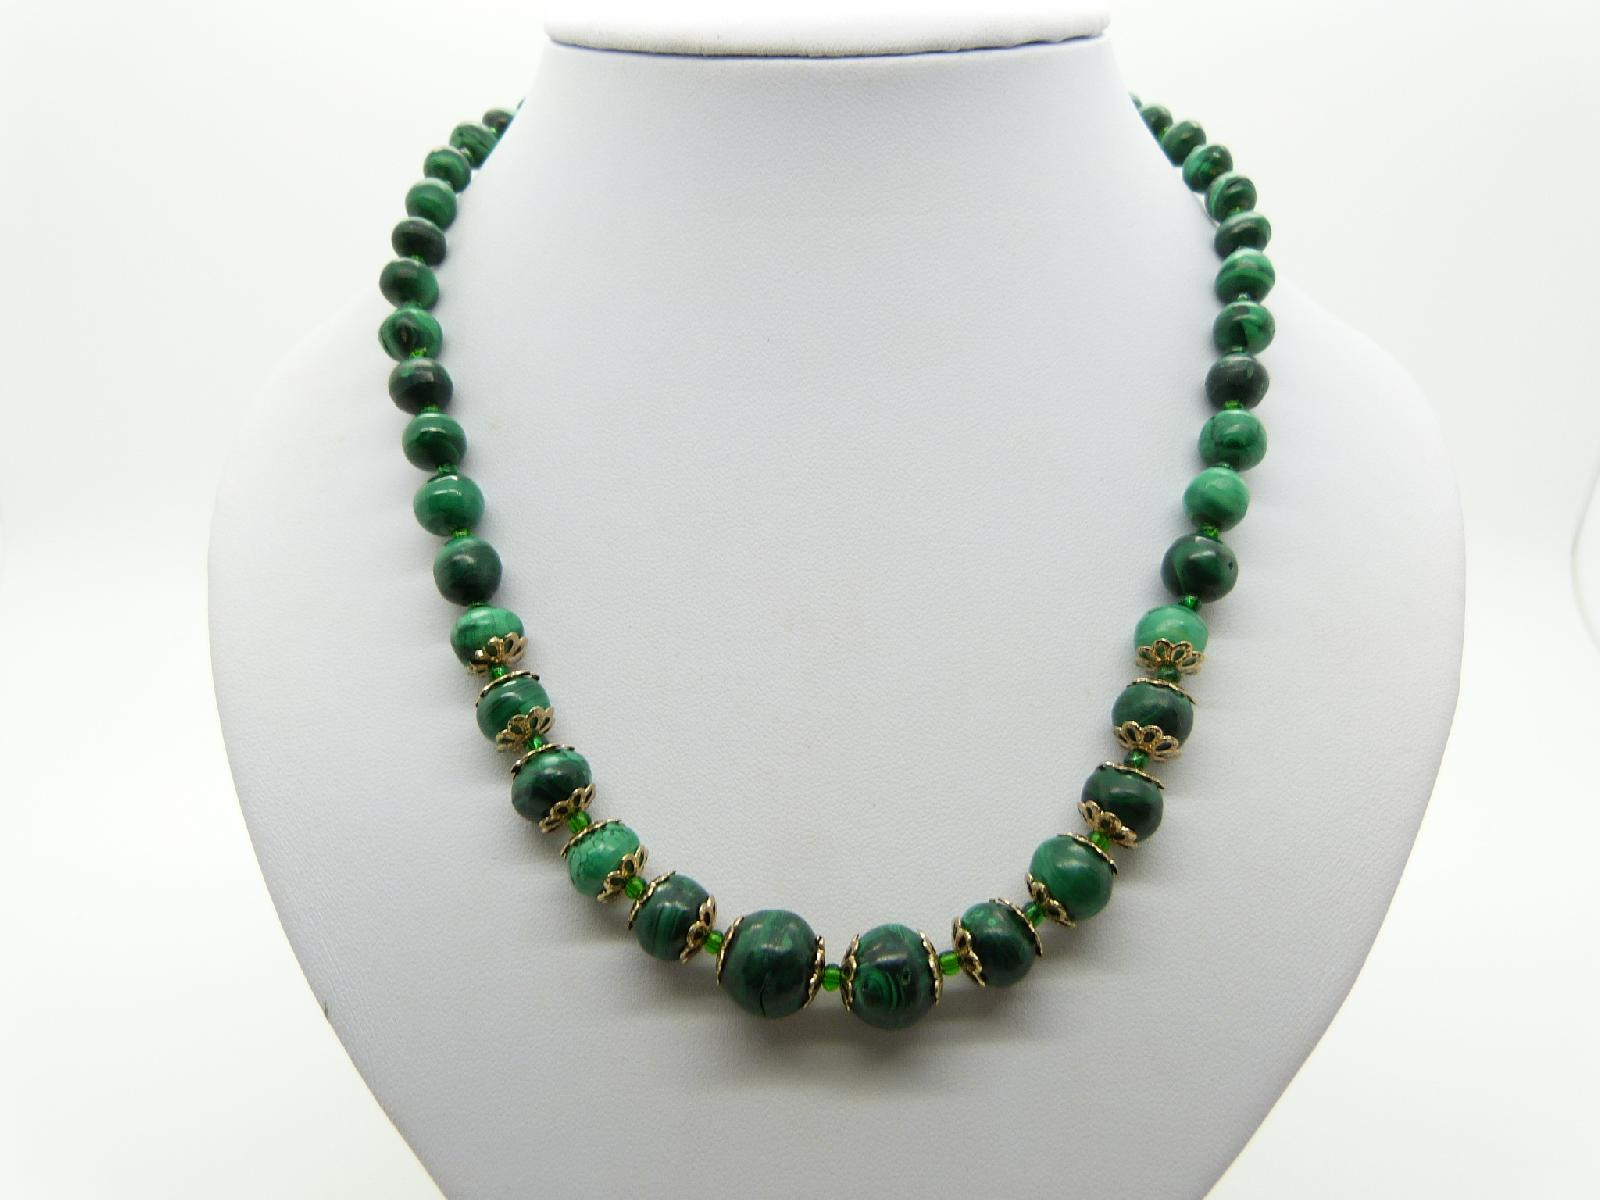 Vintage 70s Genuine Malachite Graduating Bead Necklace Stunning! 48cms